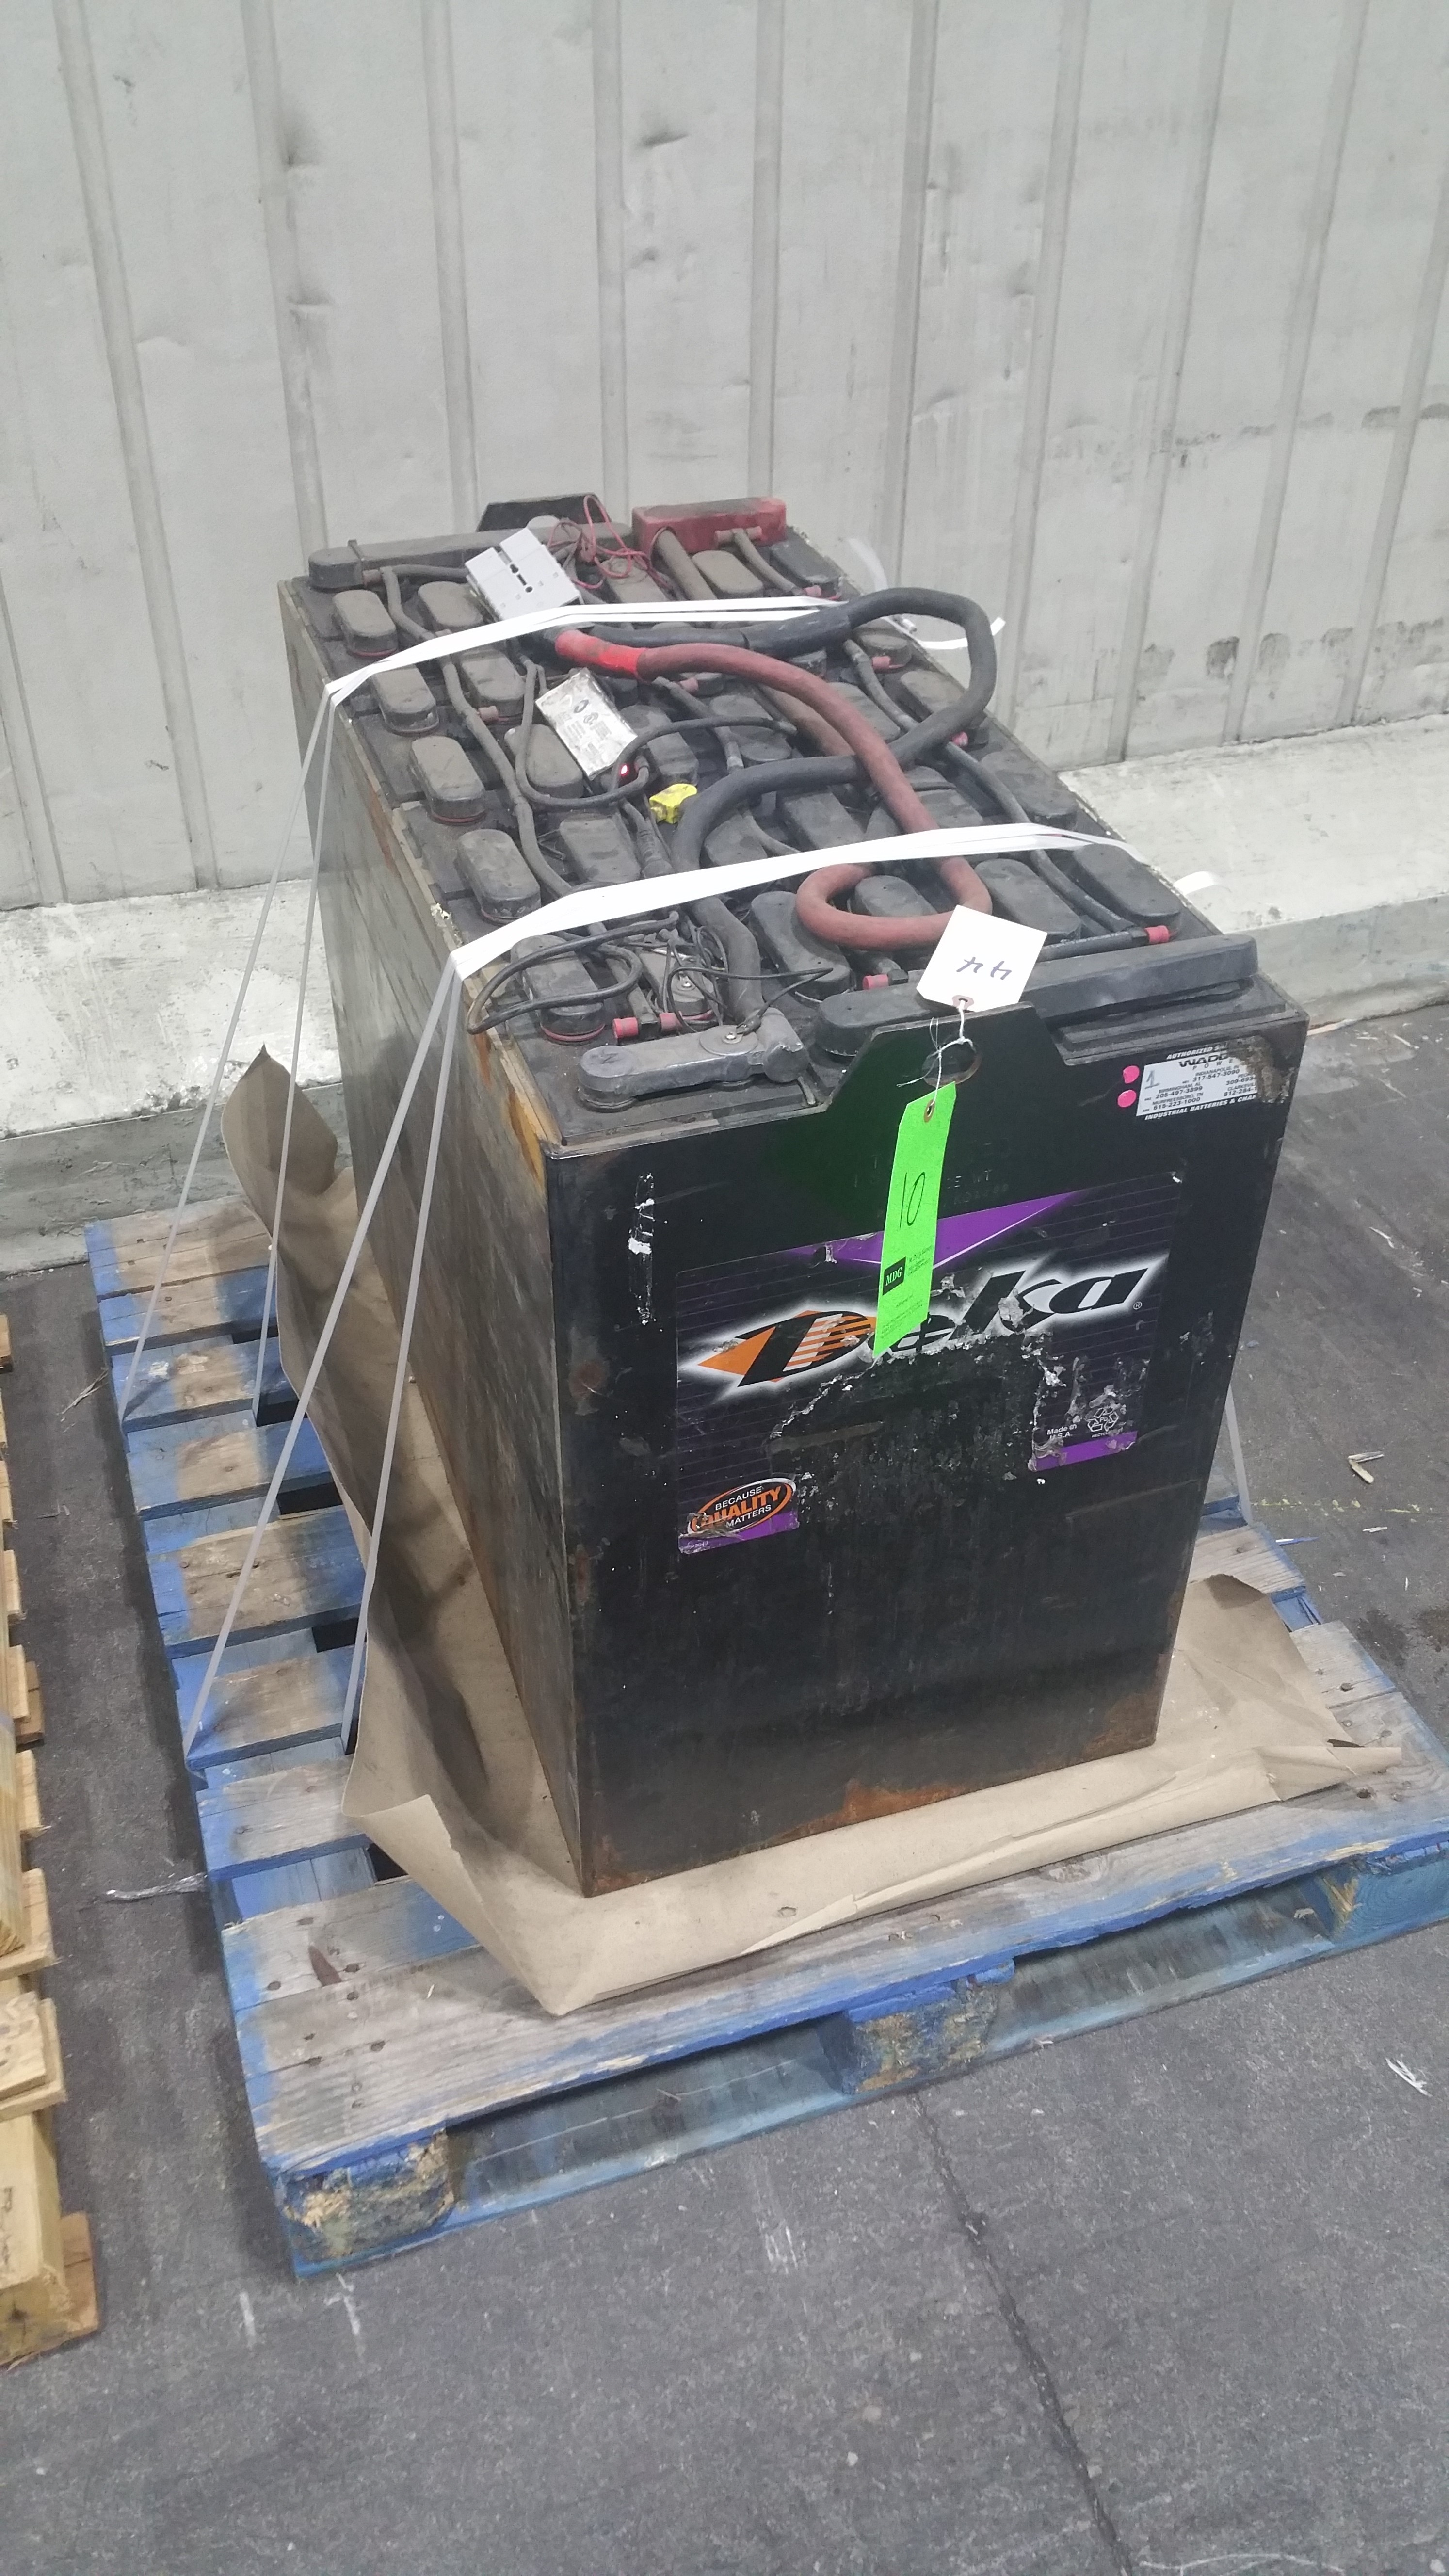 "Lot 35 - (2) Deka Fast Charge 36V Batteries, New in 2014 Used Less Than 6 Months, 20 1/16"" x 38 ¼"" x 30 7/1"